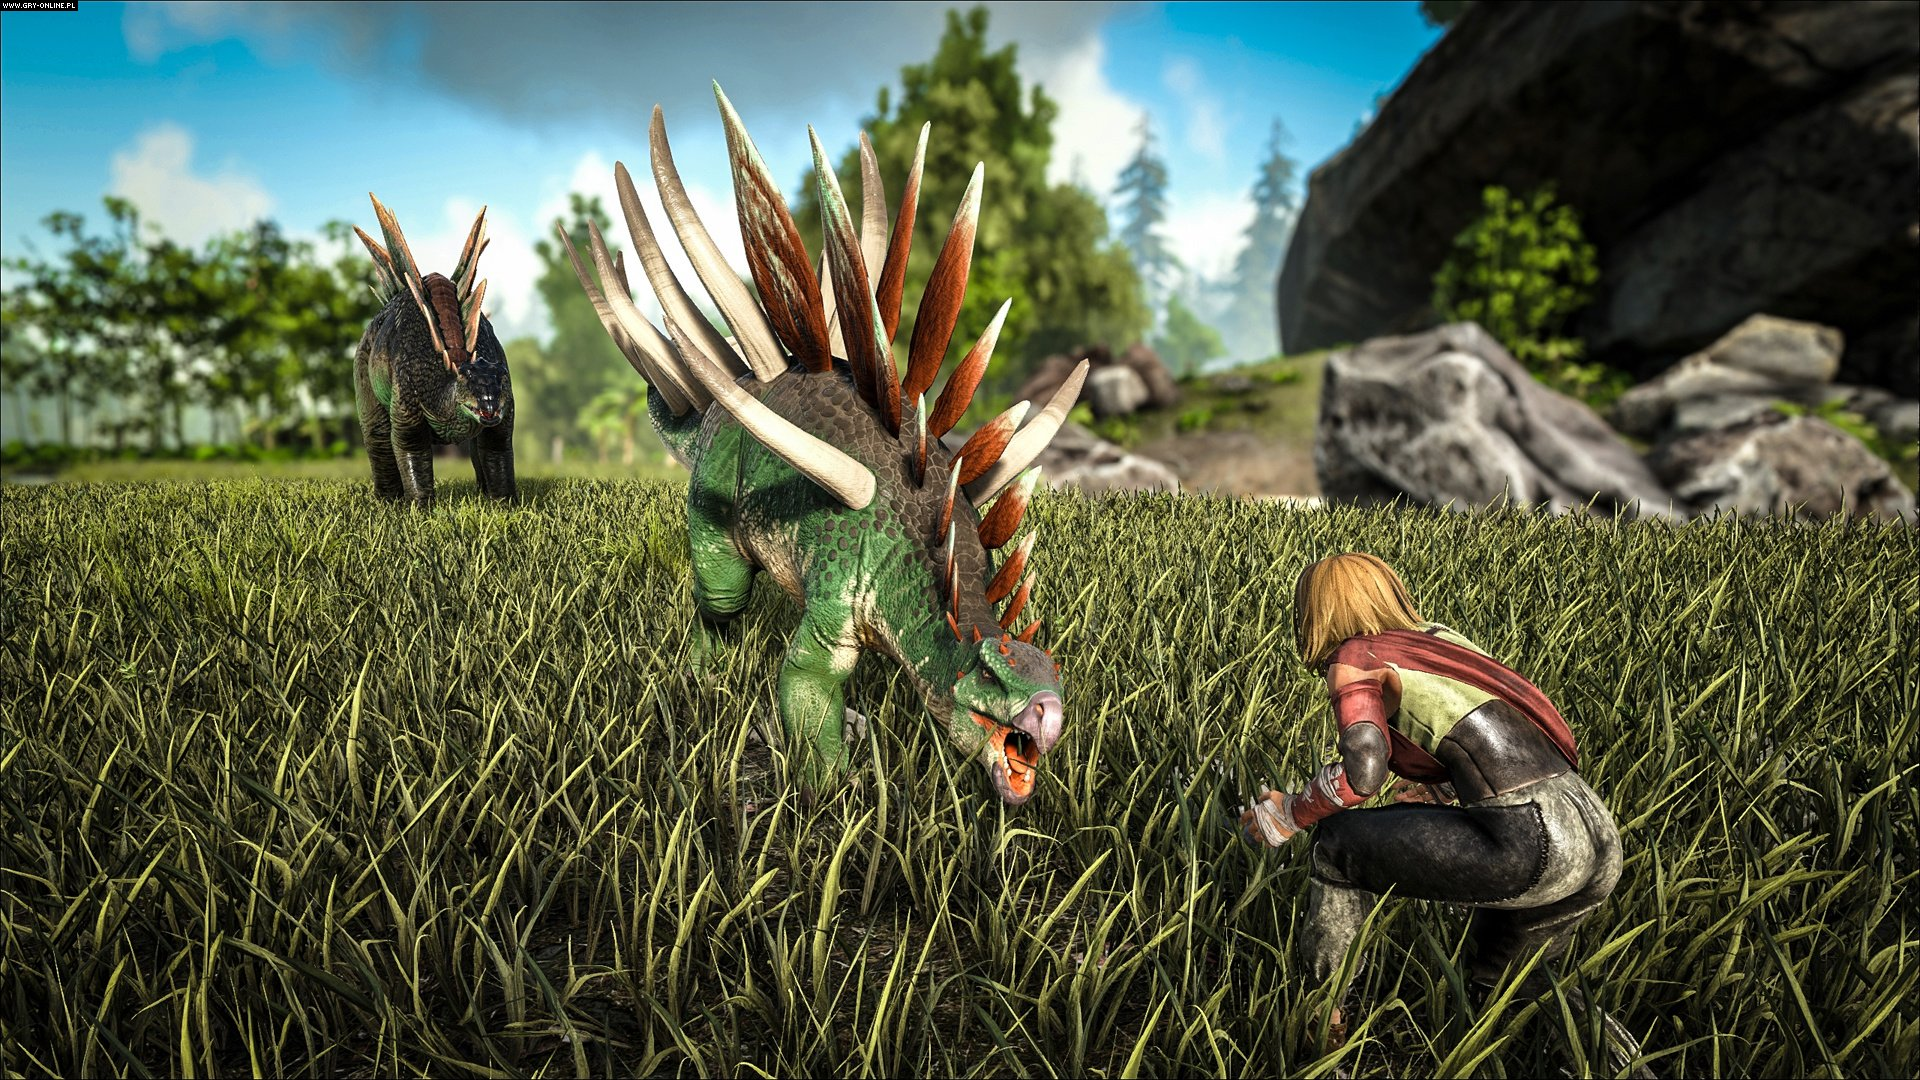 ARK: Survival Evolved PC, PS4, XONE, Switch Games Image 35/139, Studio Wildcard